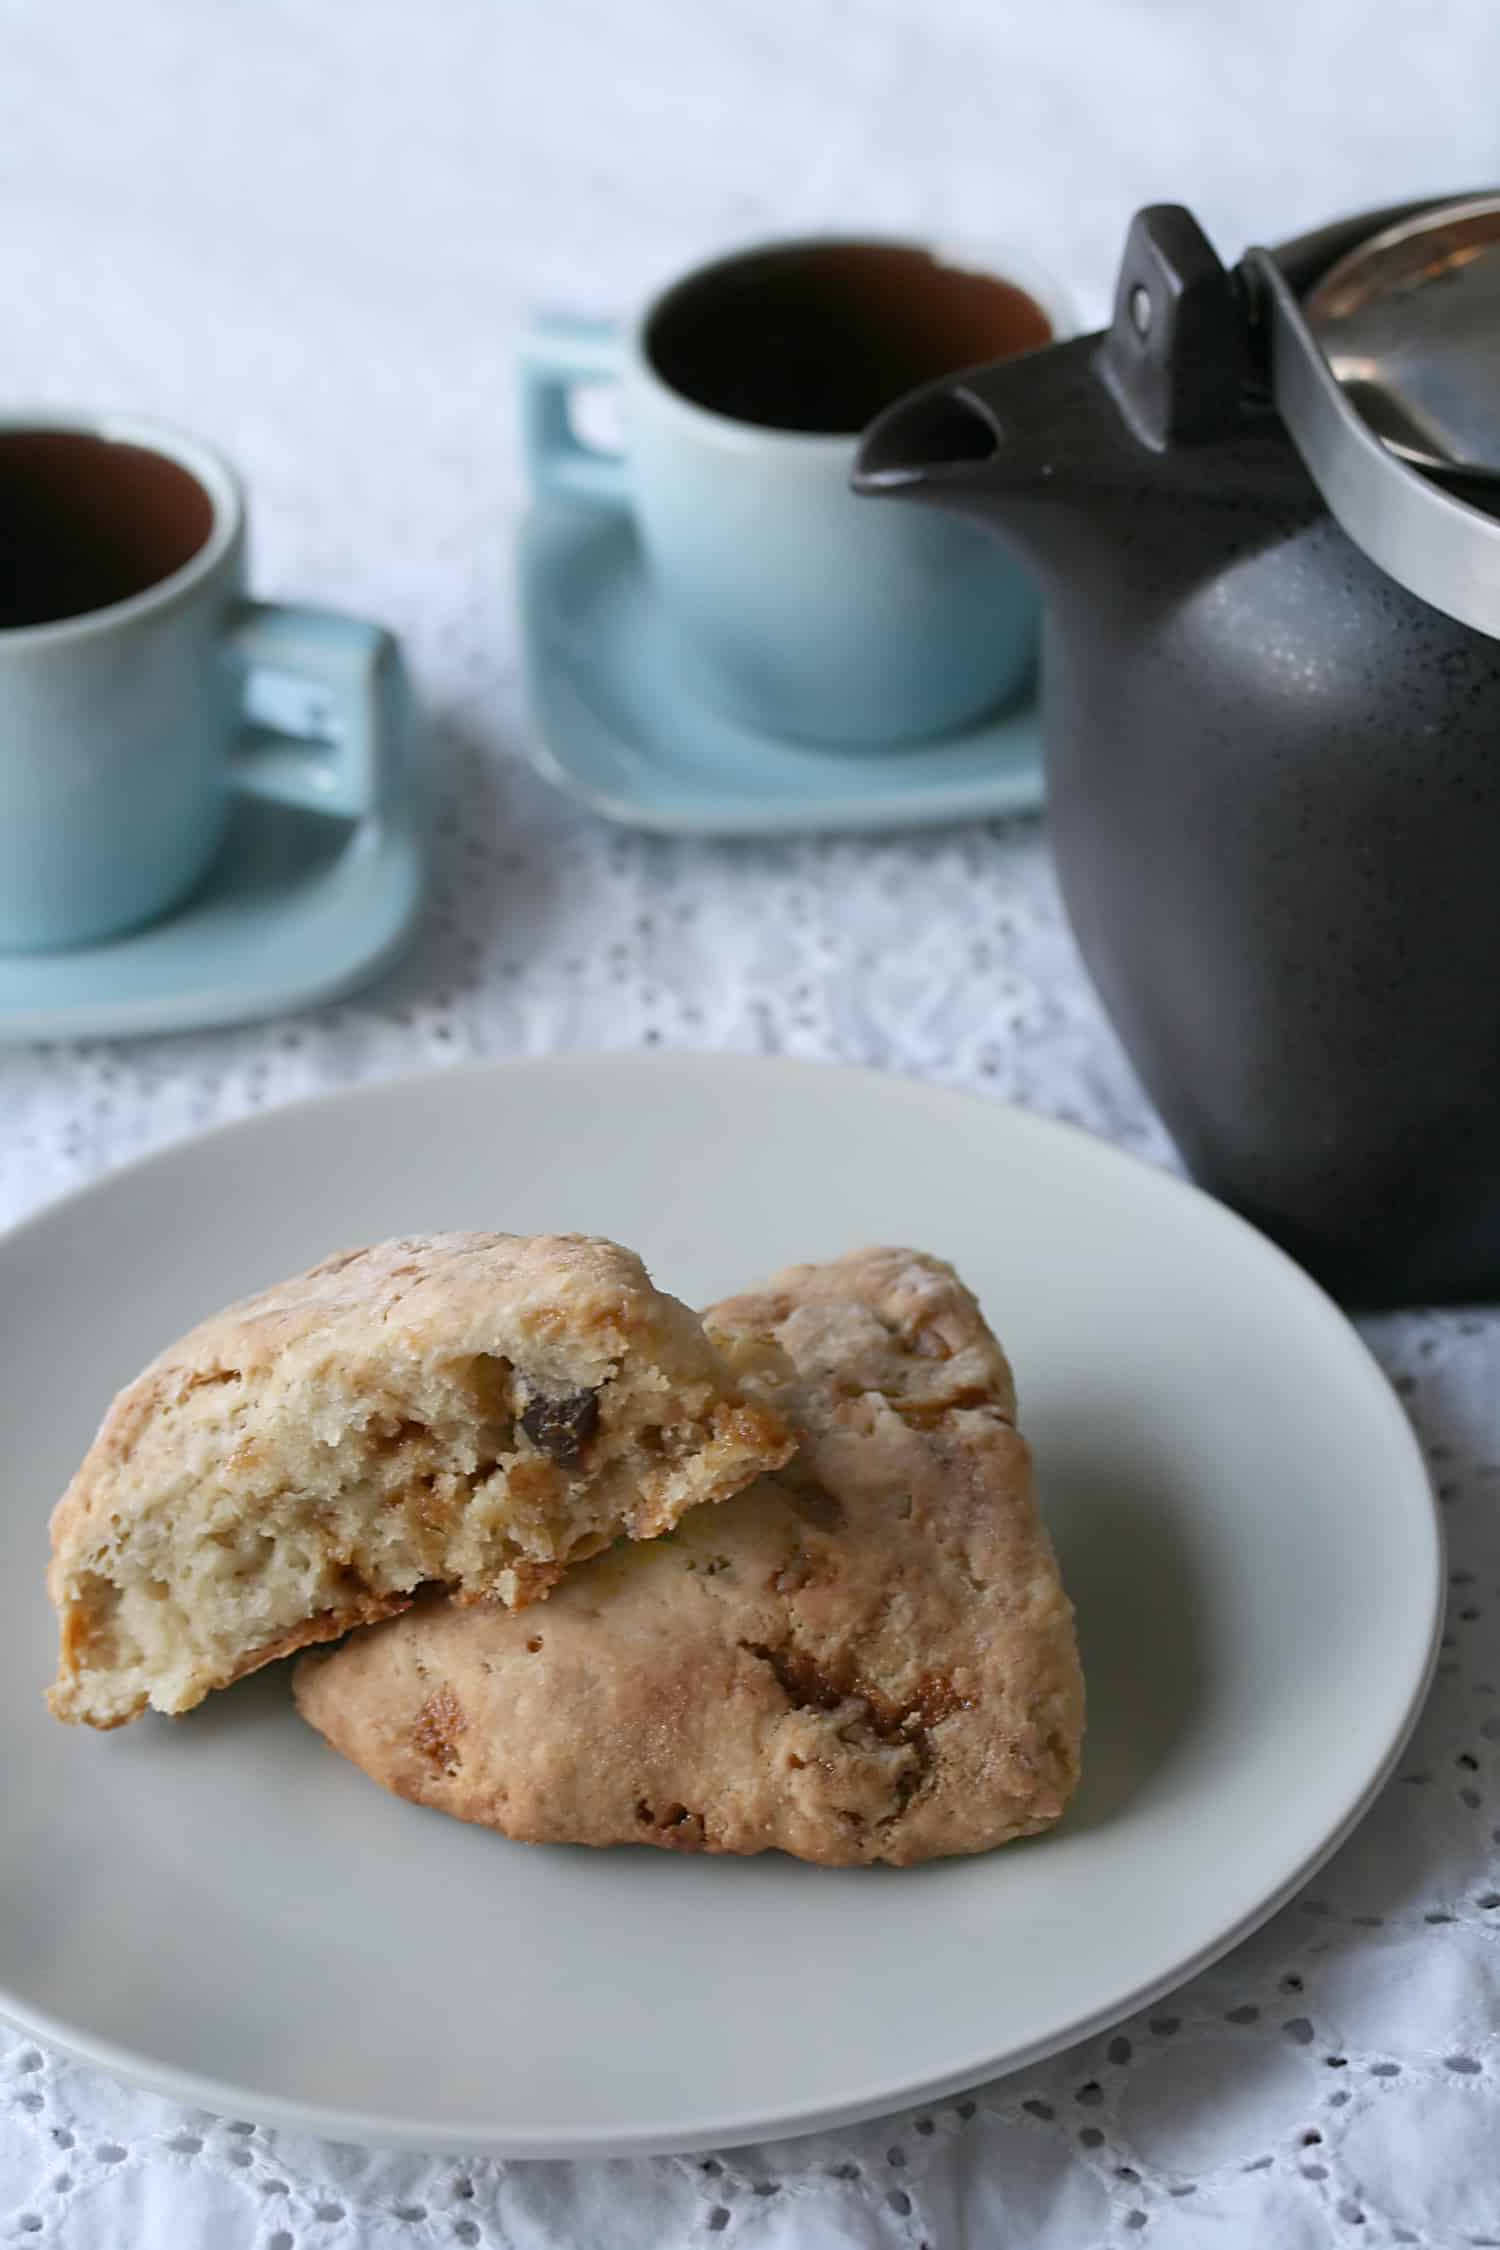 A Date for Tea: Toffee-Date Scones